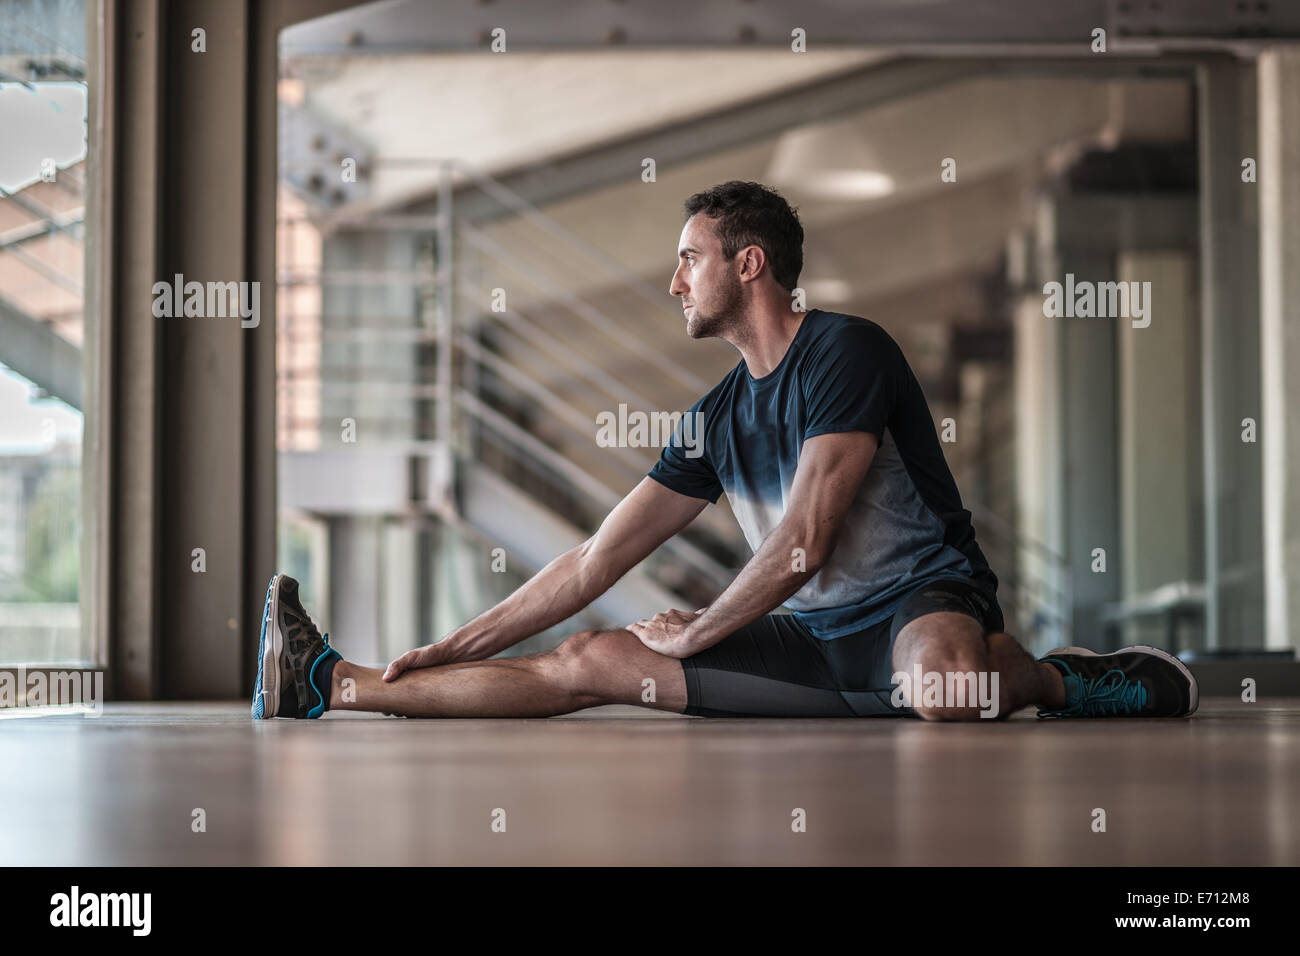 Mid adult man stretching Photo Stock